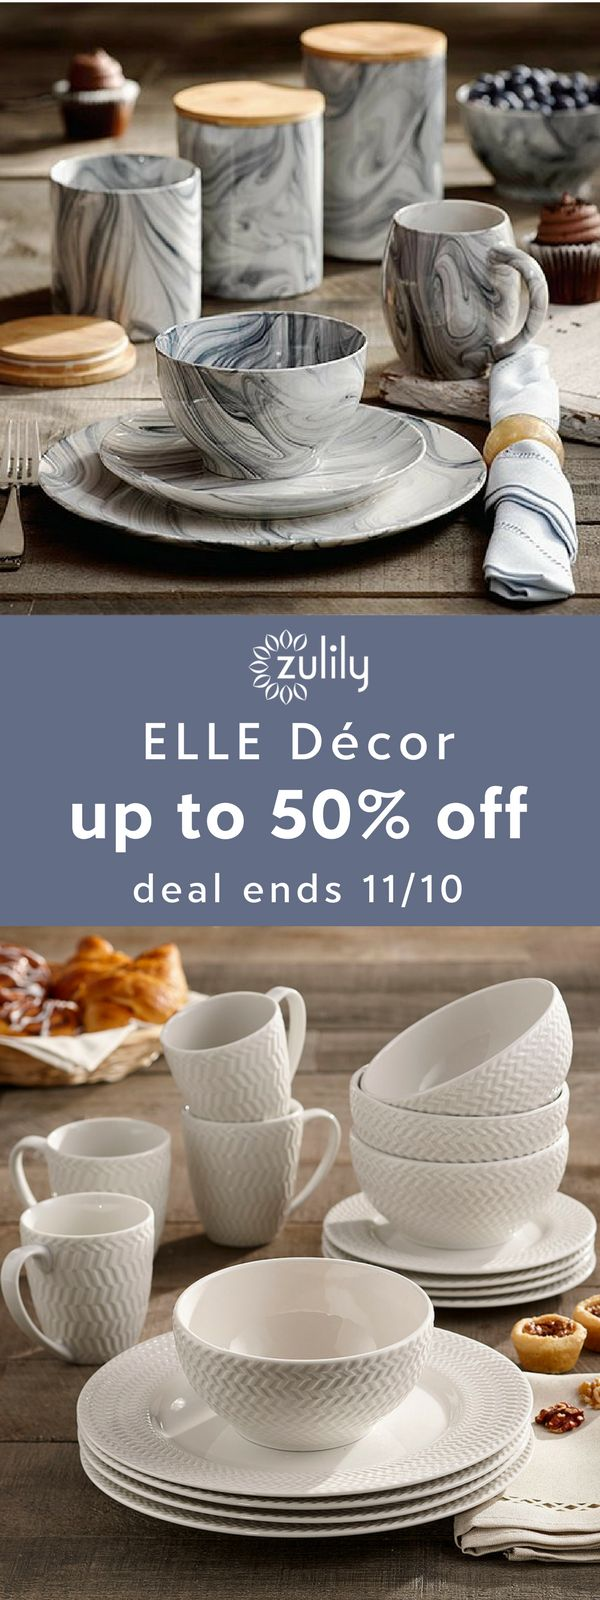 Sign up to shop 16-piece dinner sets, up to 50% off. For nearly 30 years, ELLE has been a recognized name in the fashion industry. Their home décor and kitchen line stays true to the brand's Parisian roots while introducing more modern elements for a trend-forward feel. Deal ends 11/10.